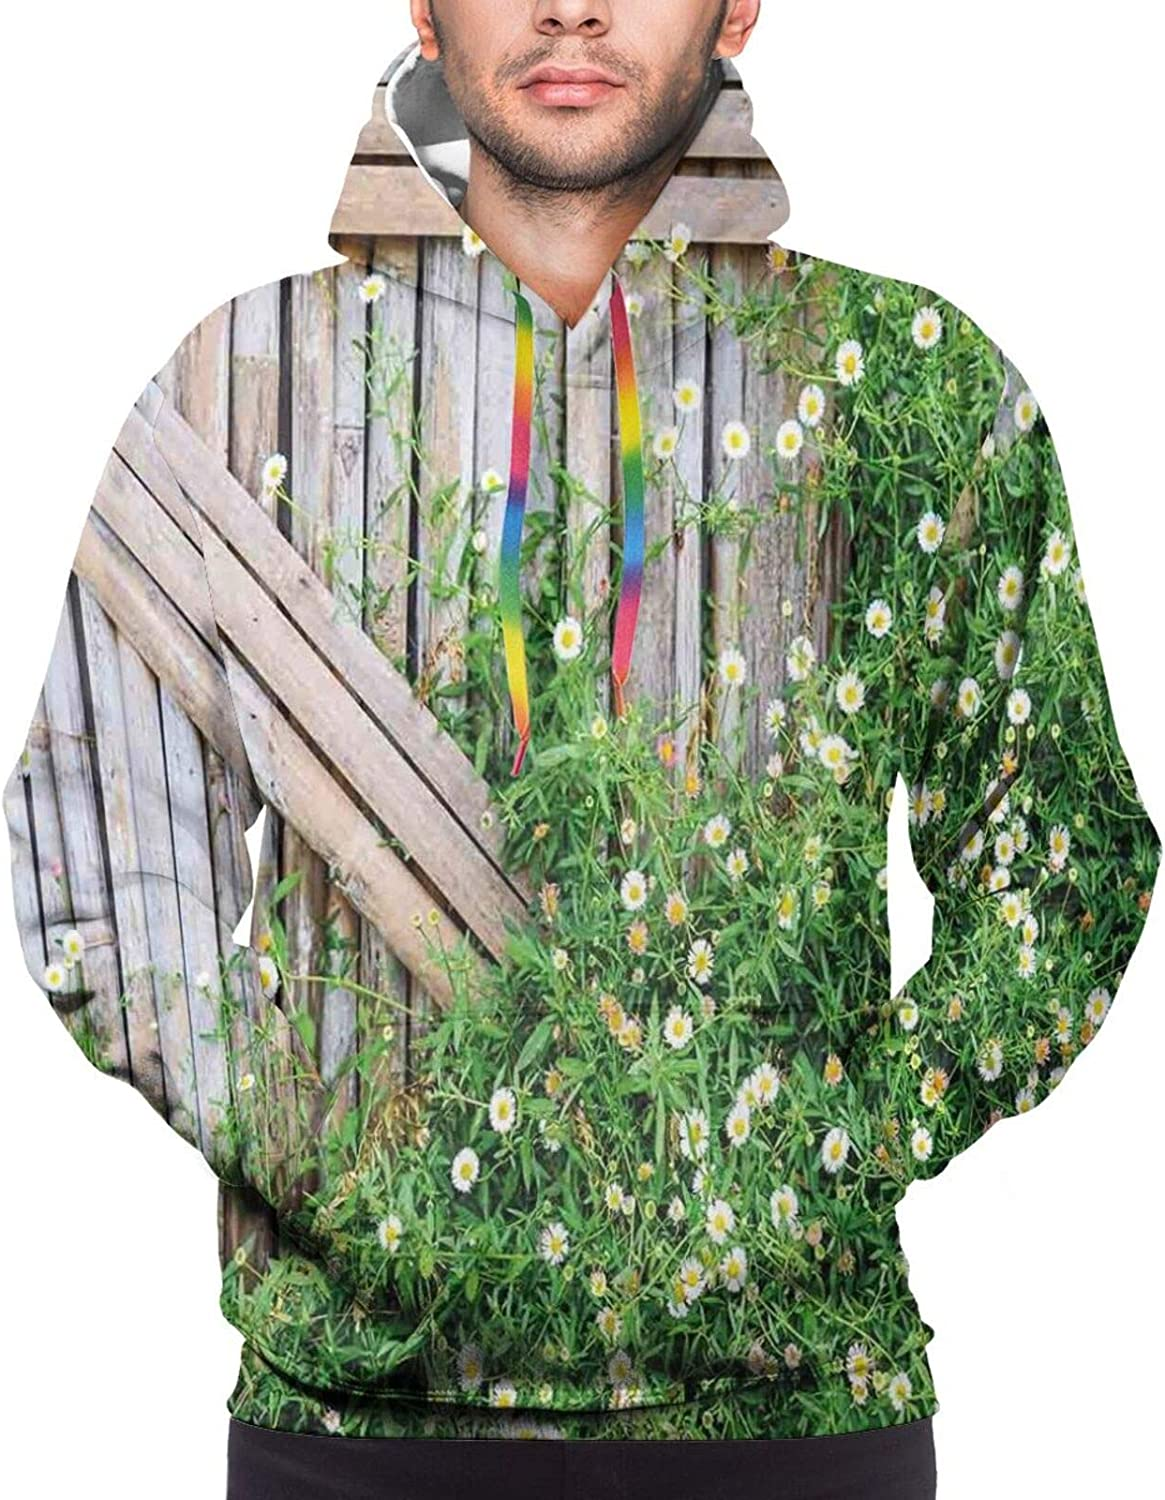 Men's Hoodies Sweatshirts,Bamboo Design with Soft Colors Chinese Culture Inspired Artwork Eastern Pattern